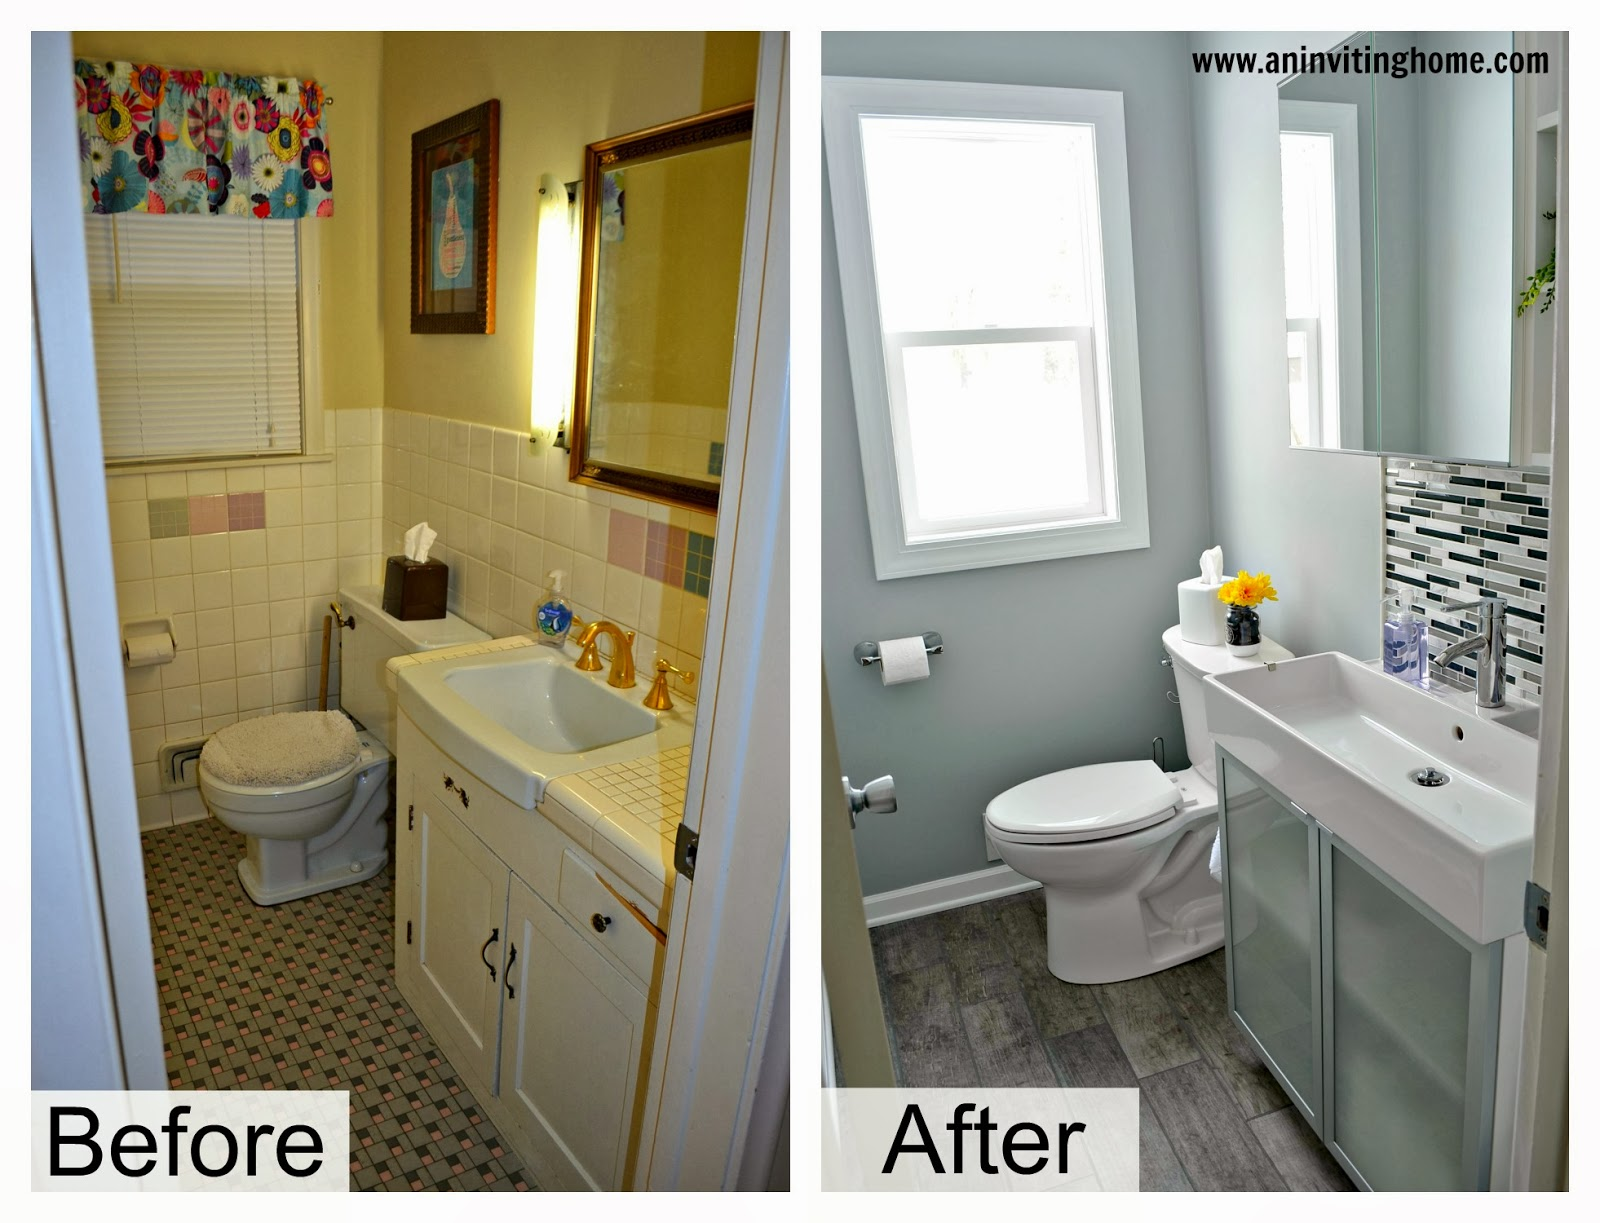 1950s bathroom remodel before and after 1950s bathroom remodel before and after best bathroom 2017 - 1950s Bathroom Remodel Before And After